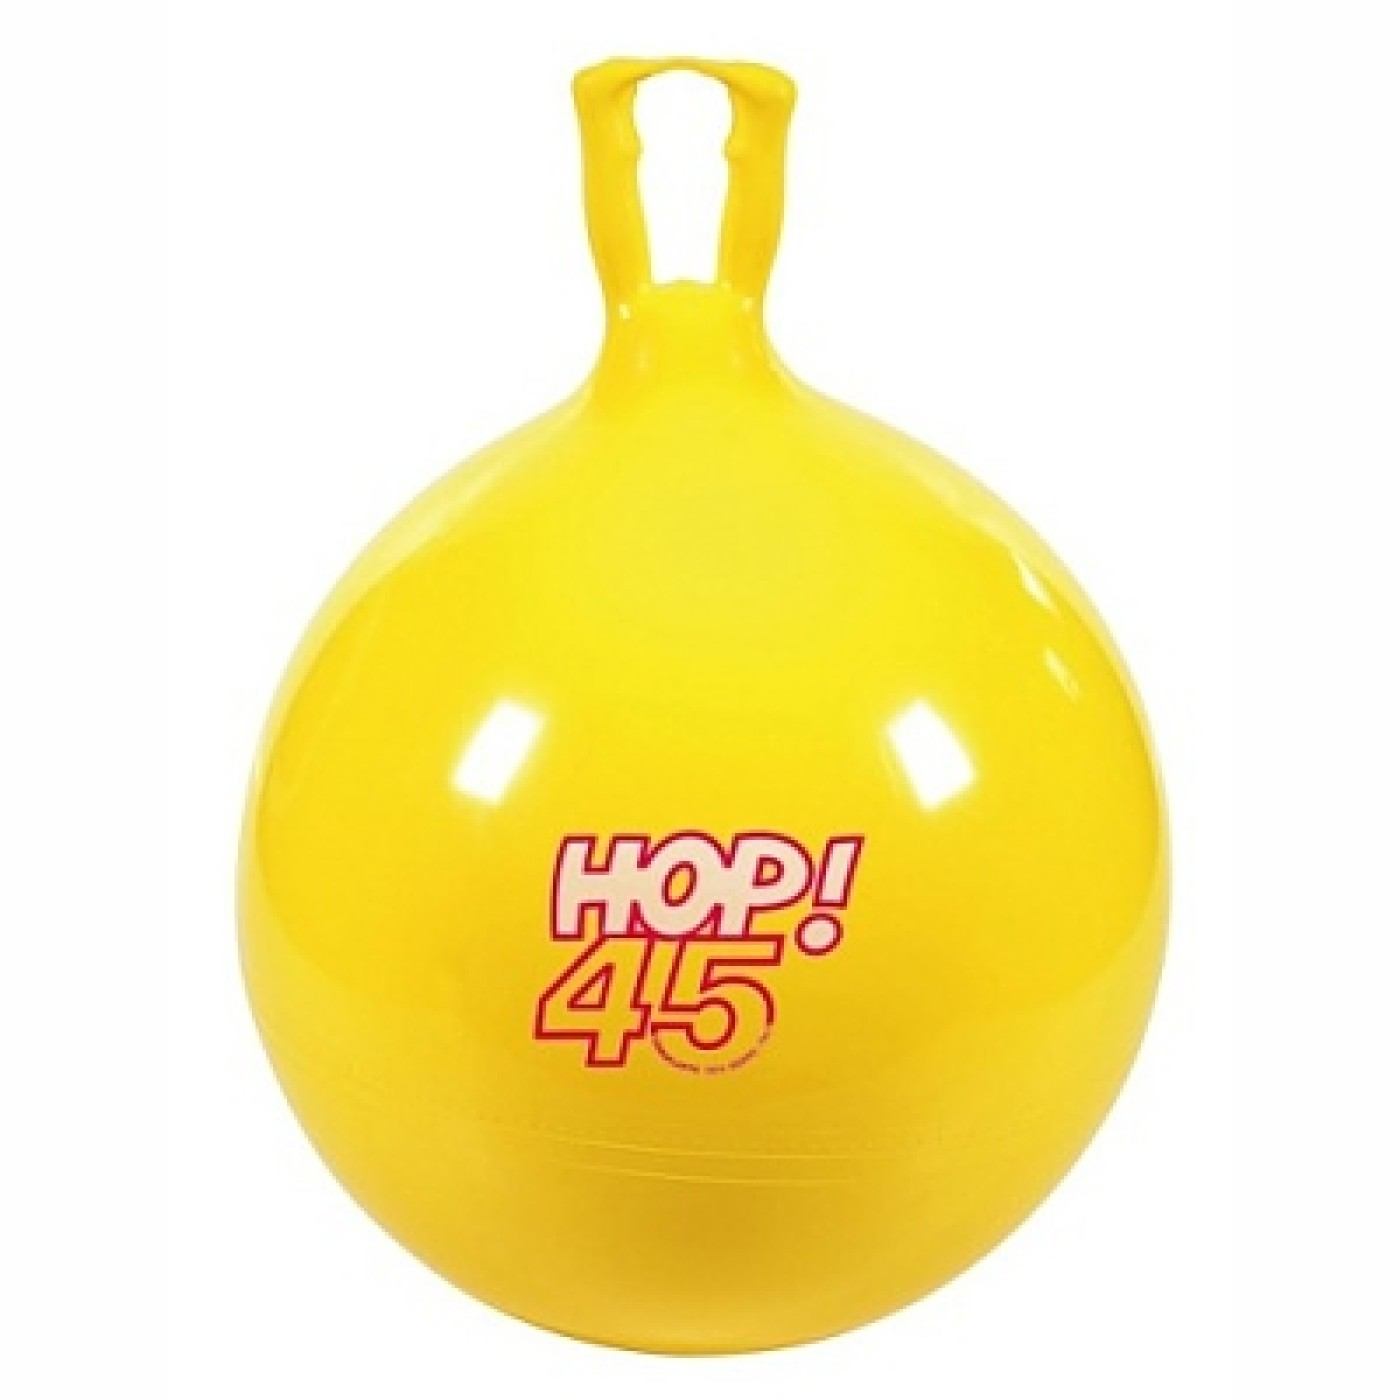 Hop 45 - Yellow